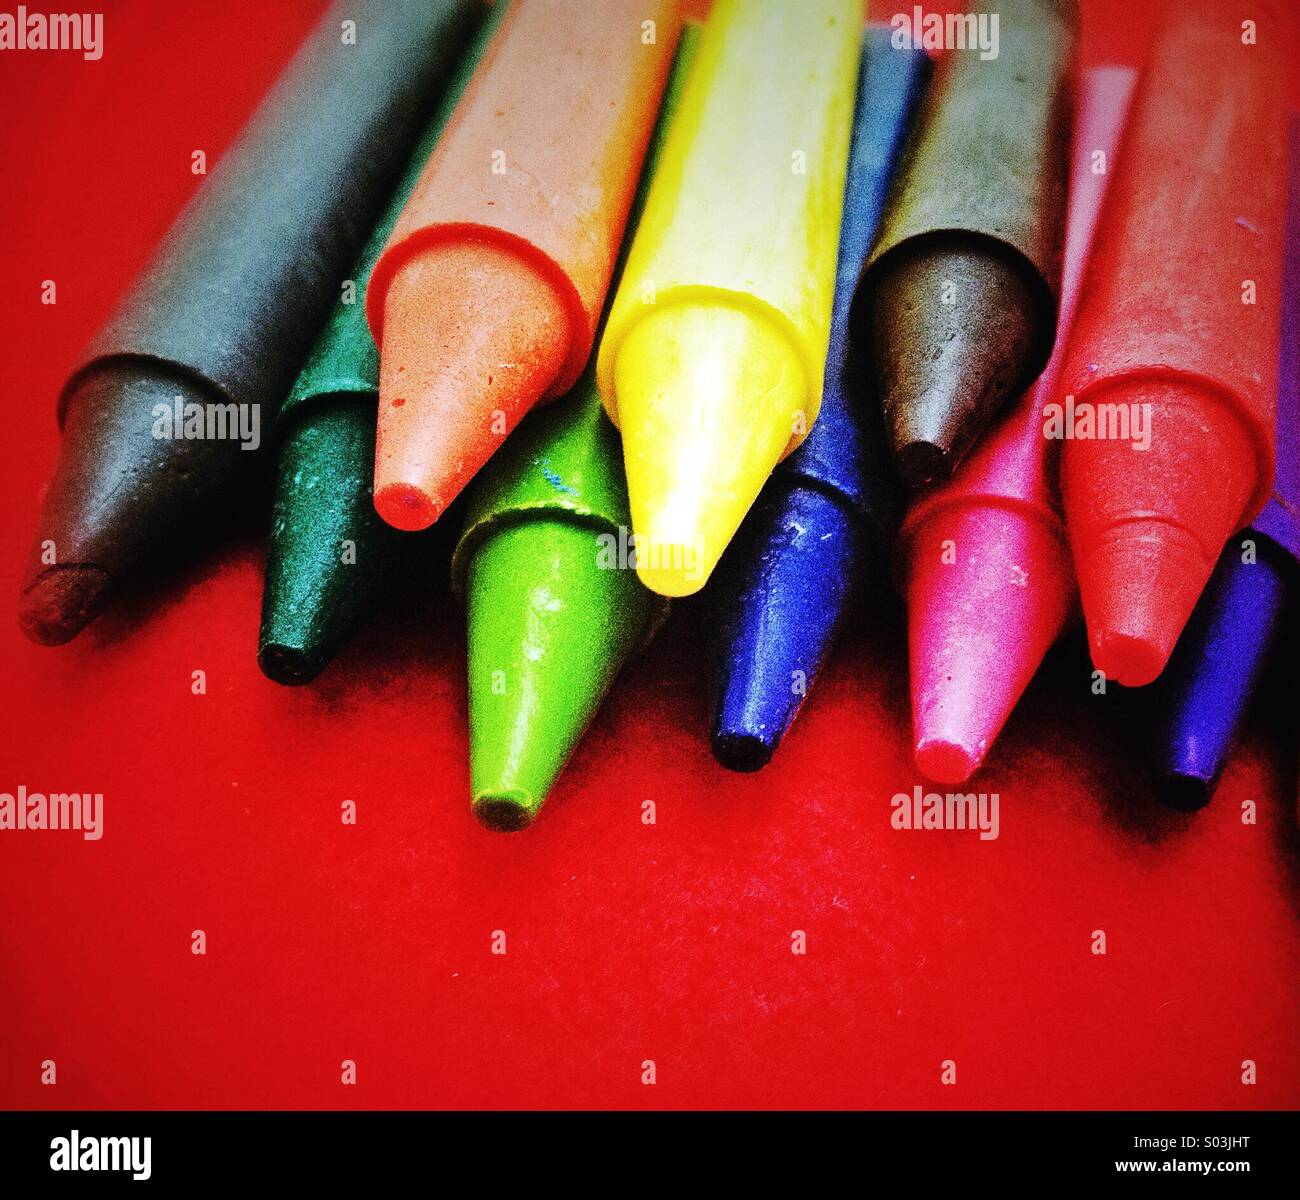 Colour crayons - Stock Image